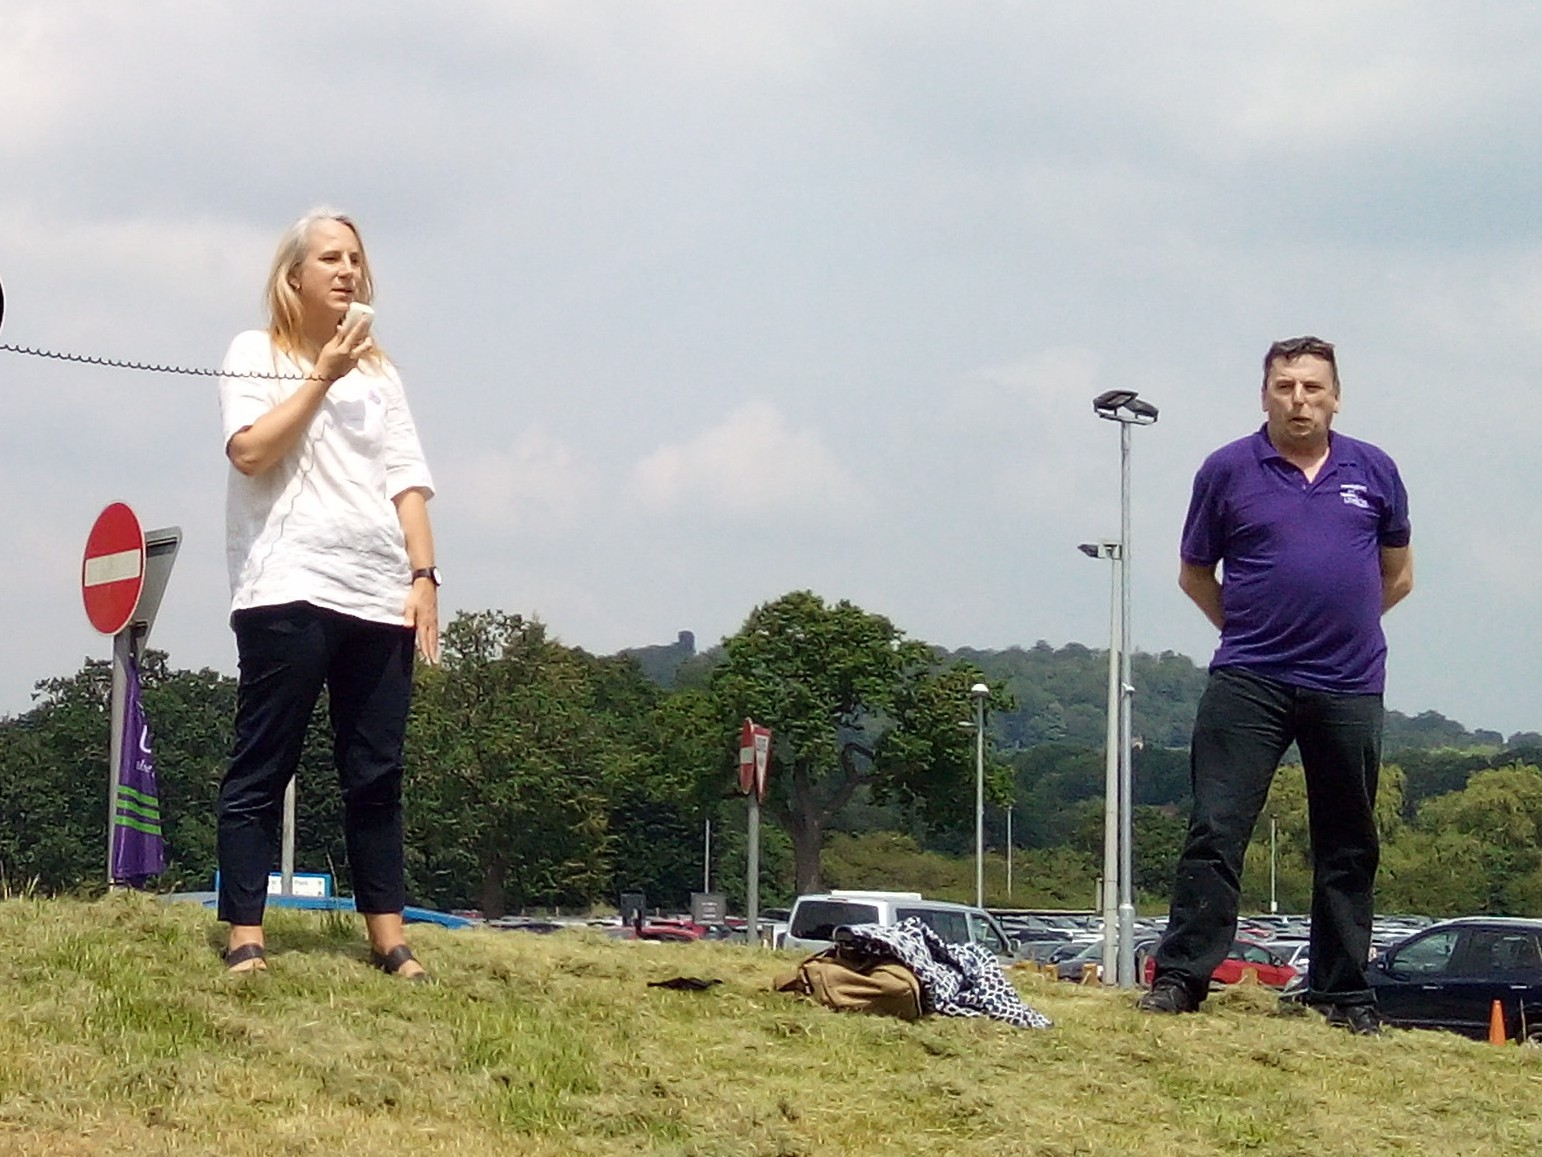 Image of Sarah Gorton, UNISON head of health, speaking at an outdoor rally. She is accompanied by a UNISON organiser wearing a purple polo shirt